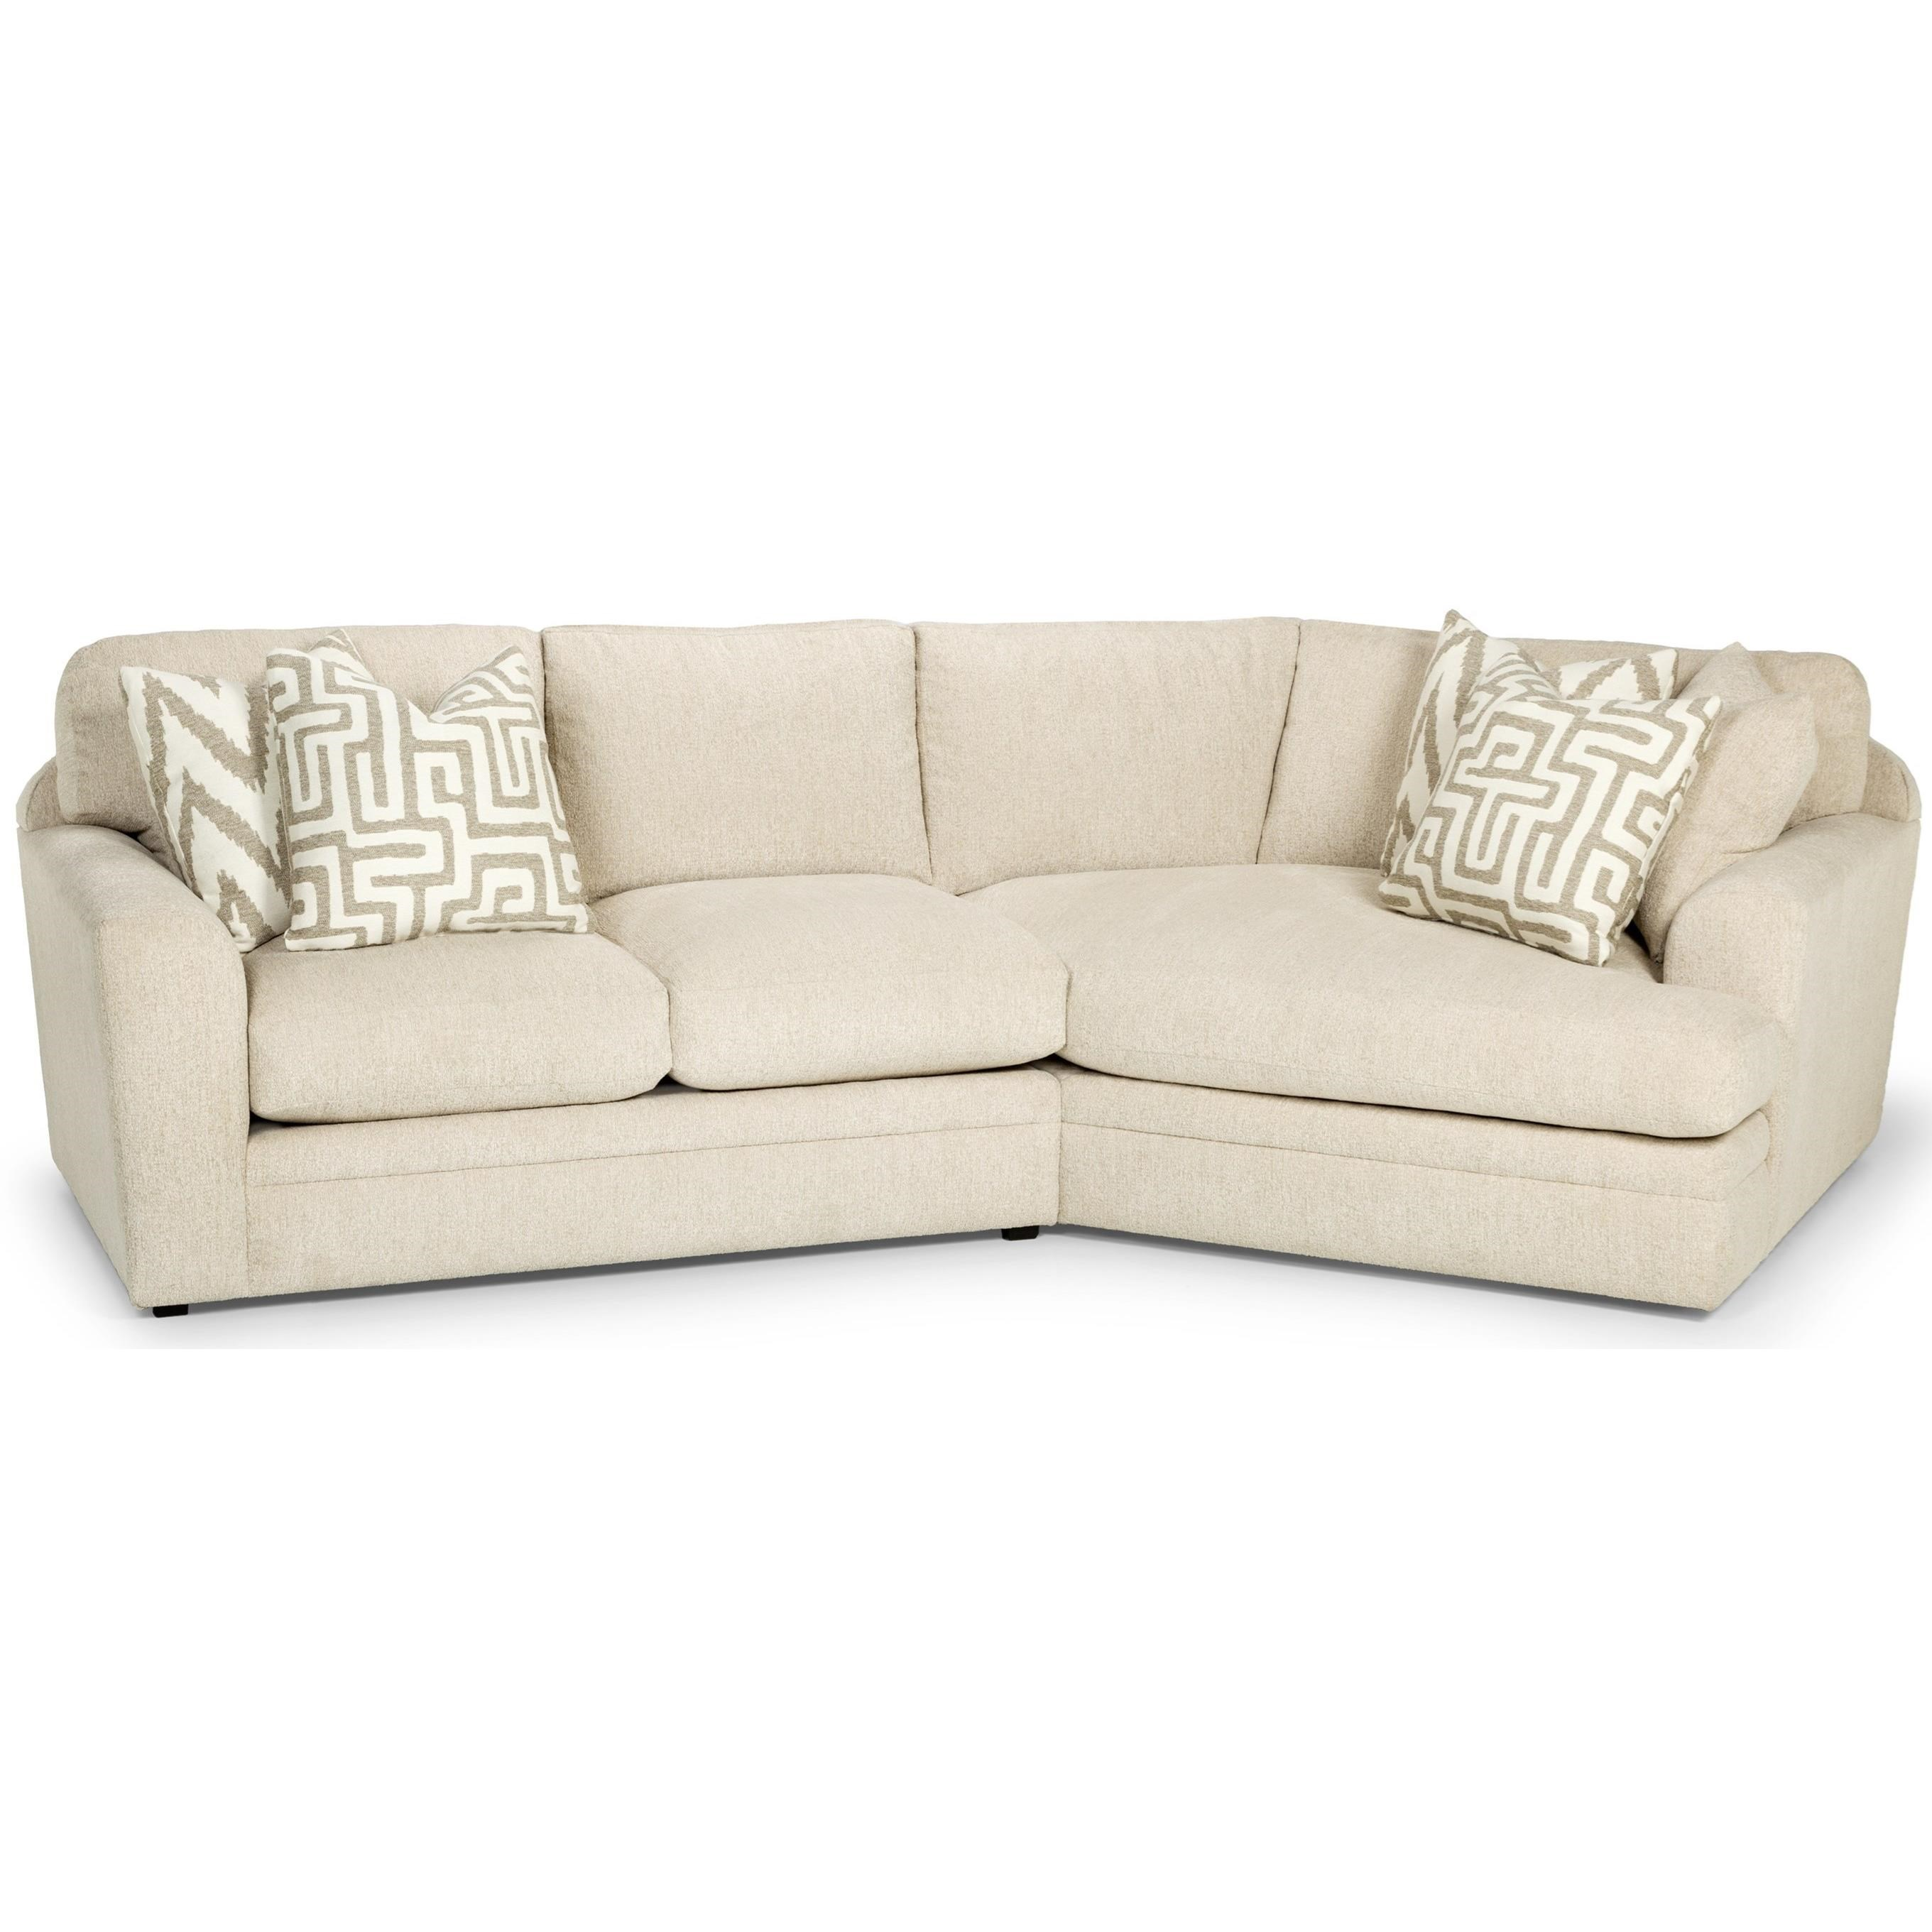 429 Two Piece Sectional Sofa w/ RAF Cuddler by Stanton at Wilson's Furniture